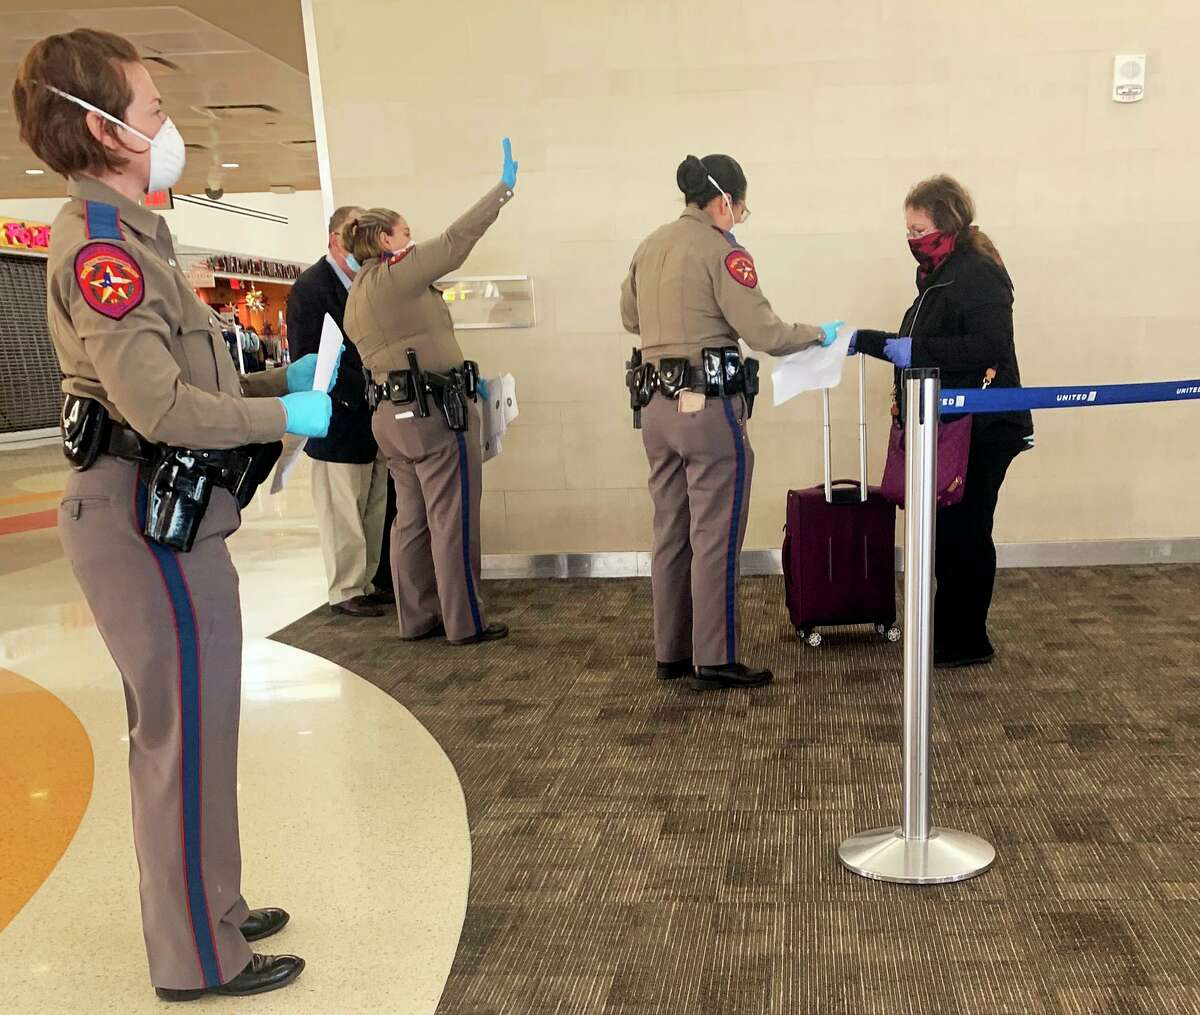 A team of Texas State Troopers greeted passengers leaving a United flight from Chicago at San Antonio International Airport. Travelers were required to fill out a quarantine form disclosing where they will shelter in place for the next 14 days. An executive order by Gov. Greg Abbott required travelers boarding planes in Chicago and other designations to quarantine once they arrive in Texas.